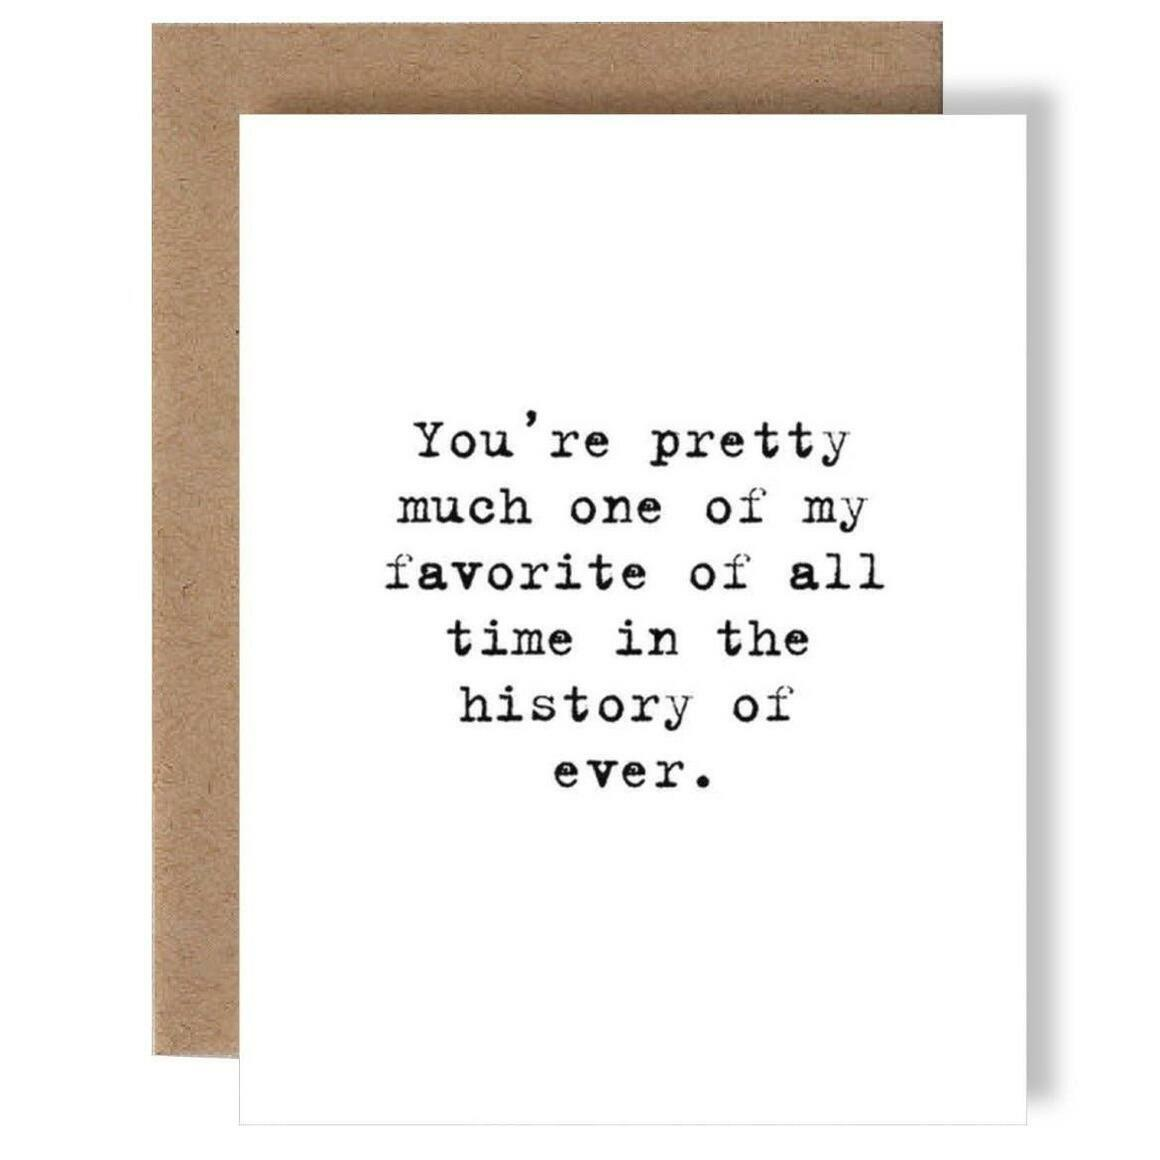 History Of Ever Greeting Card   Trada Marketplace